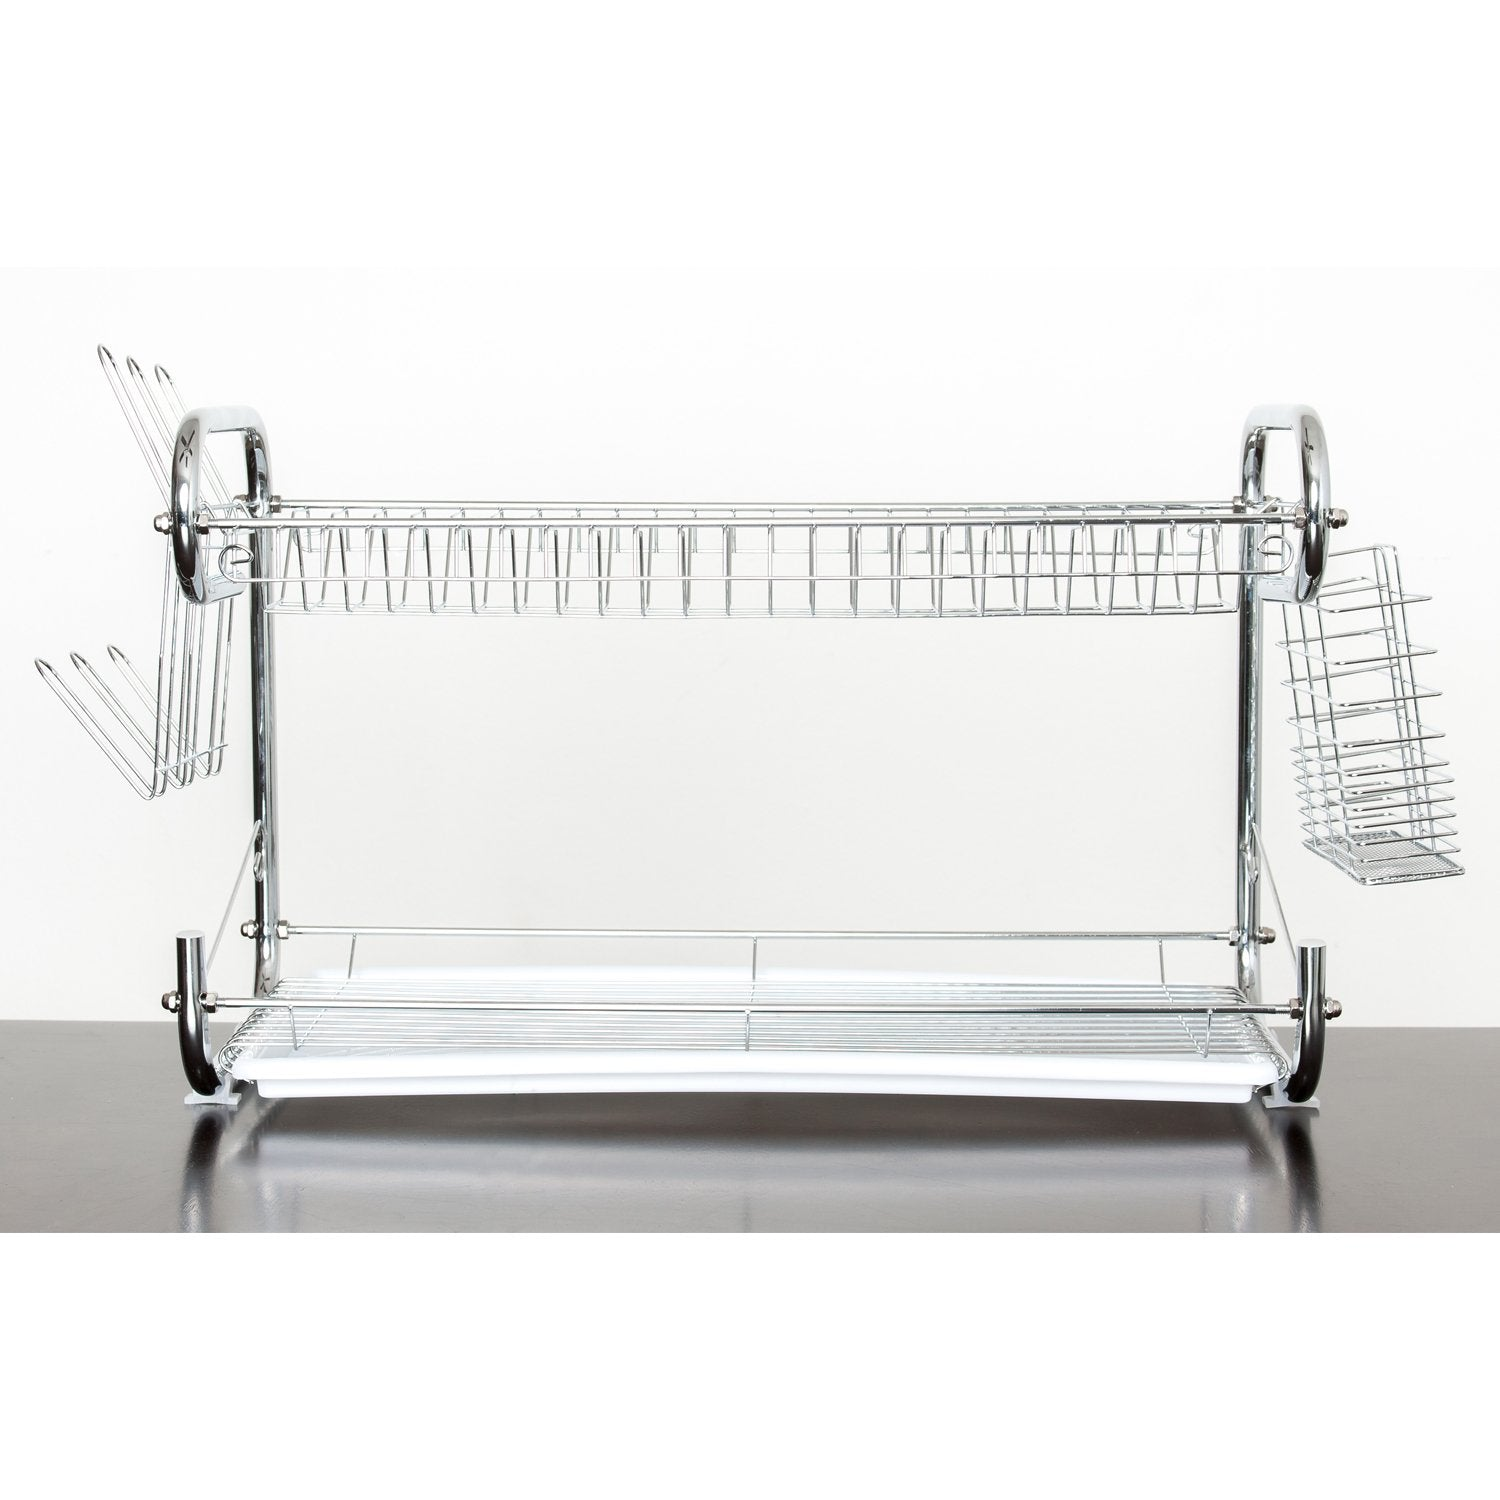 22 Inch Dish Drainer Rack - 2 Tier Dish Holder Dish Rack Organizer – Chrome Plate Dish Drying Rack